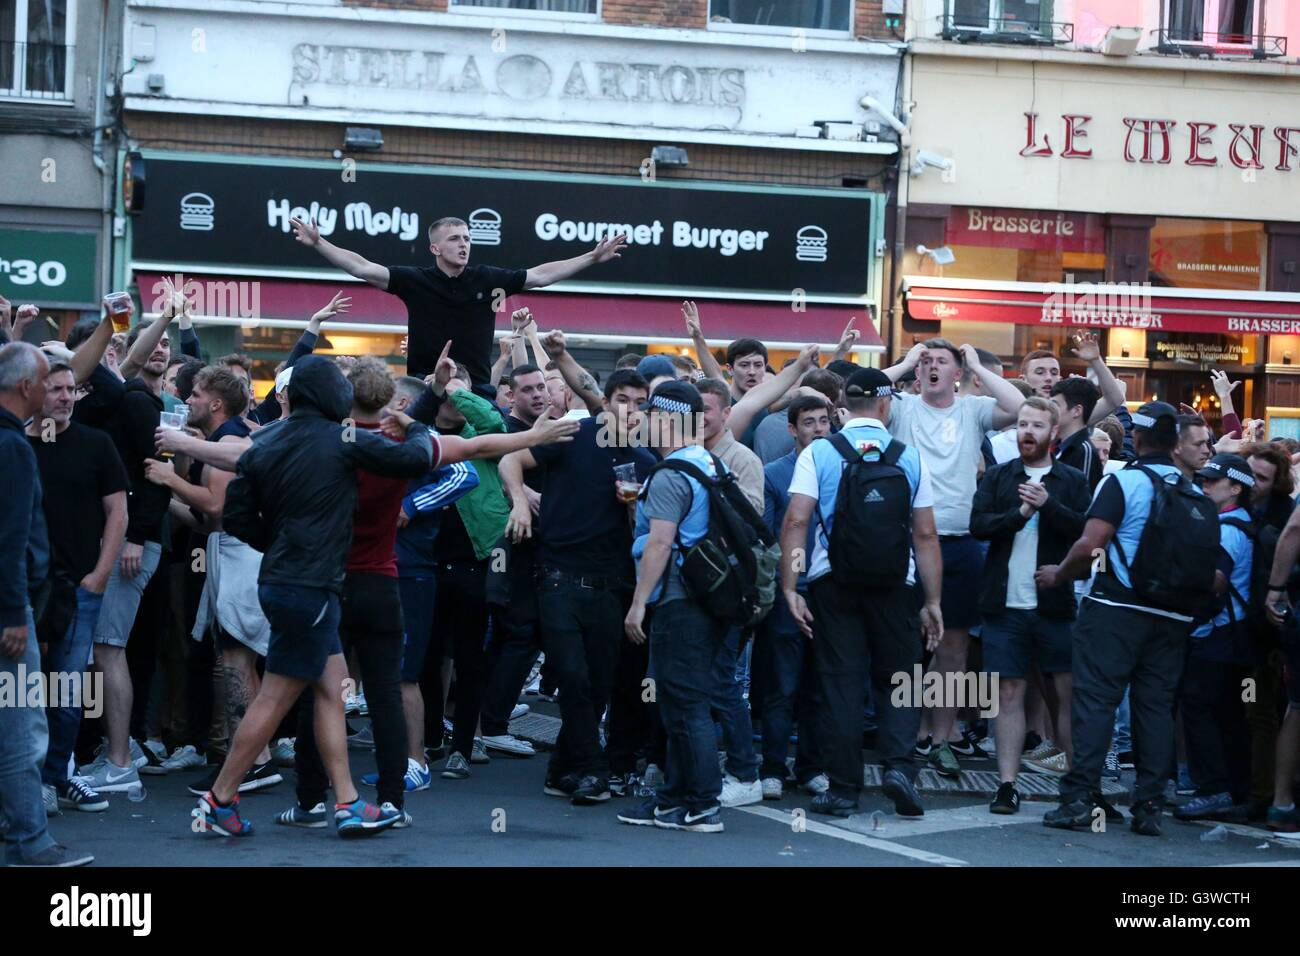 uk police officers take a leading role monitoring england fans in lille city centre france